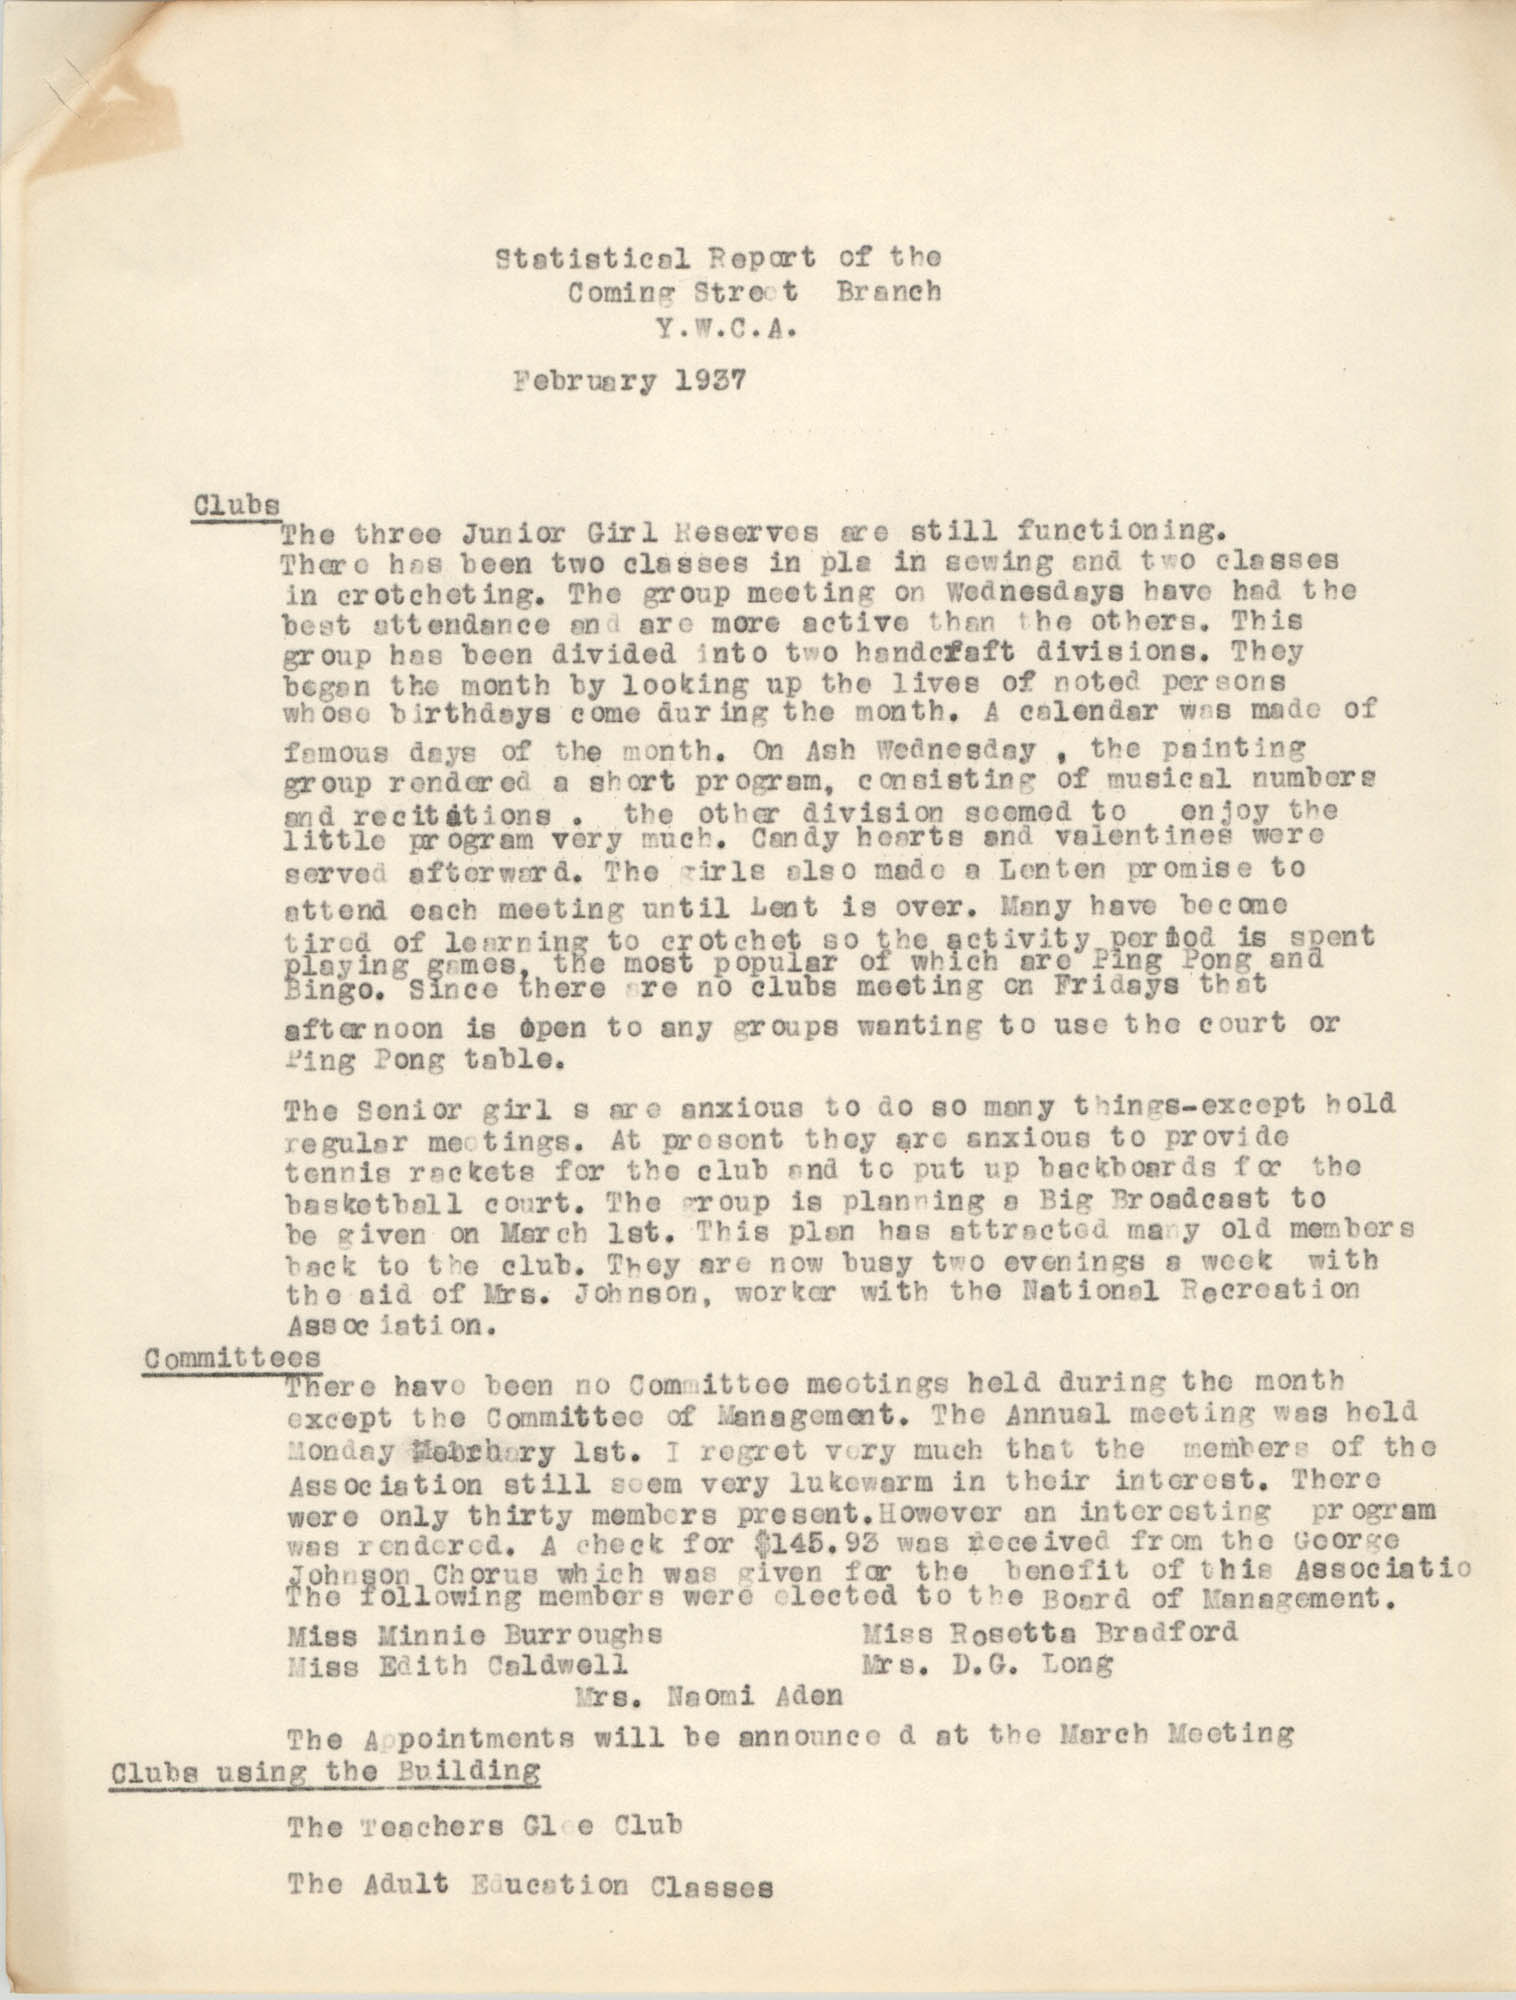 Statistical Report of the Coming Street Y.W.C.A., February 1937